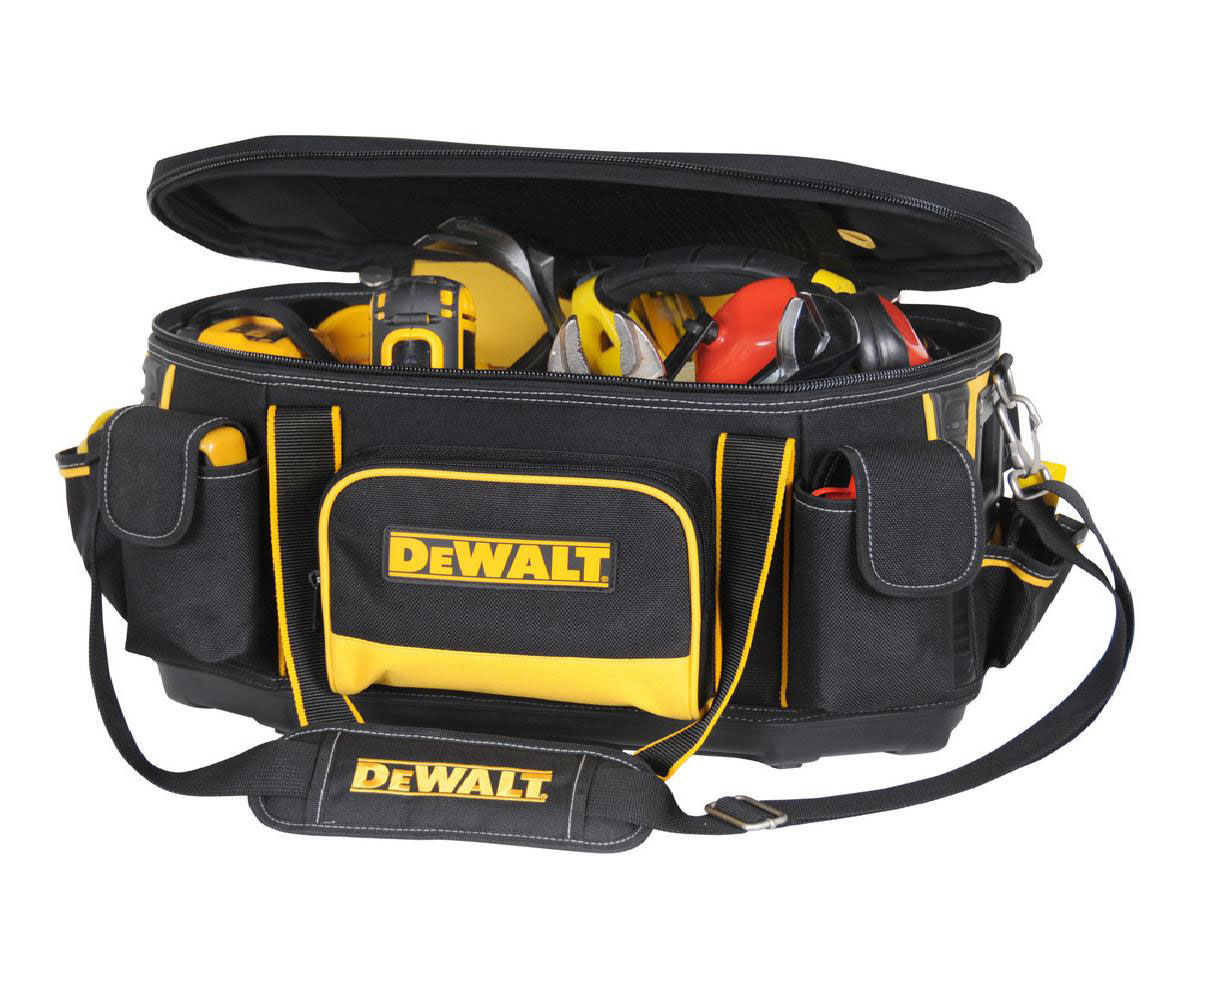 DeWALT 1-79-211 - Power Tool Rigid Bag